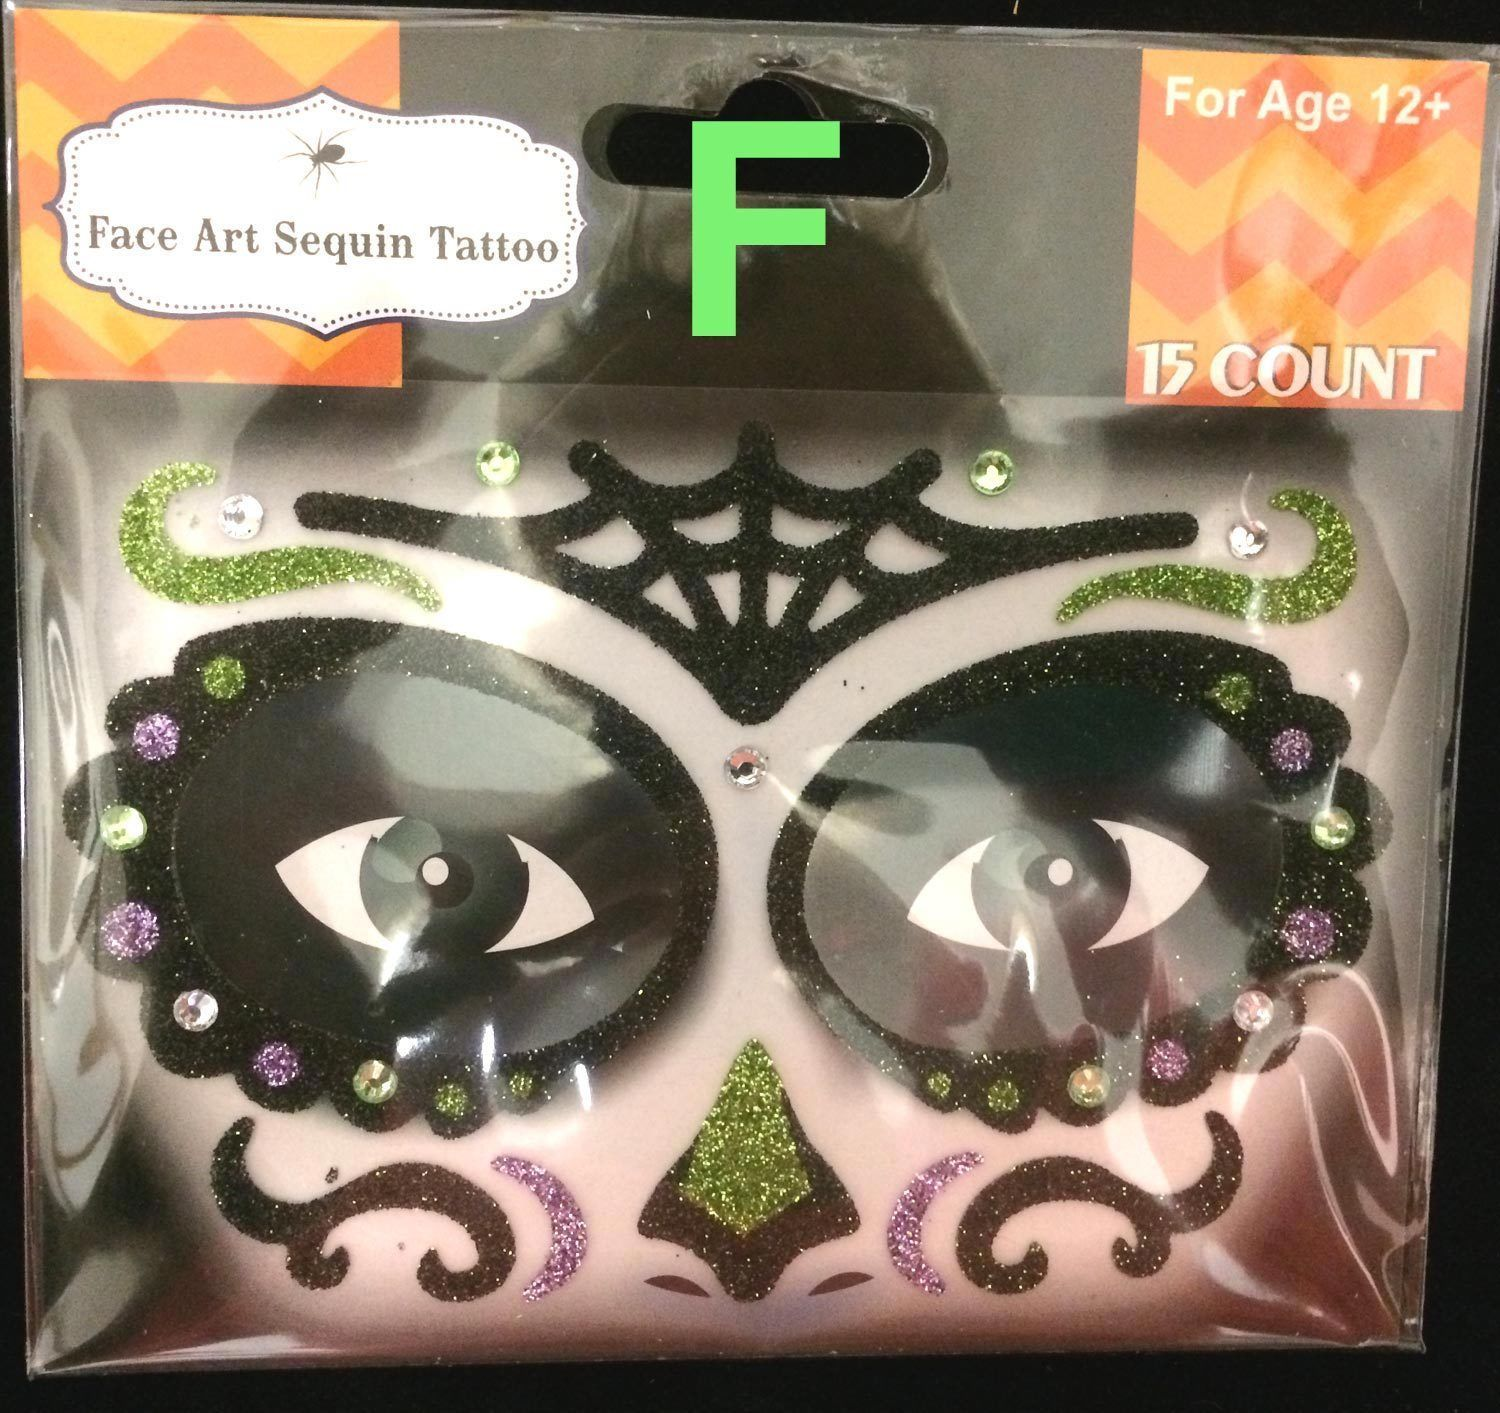 Gothic Tattoo EYE DECALS Mardi Gras Makeup Face Art-DAY DEAD SUGAR SKULL-Choose1